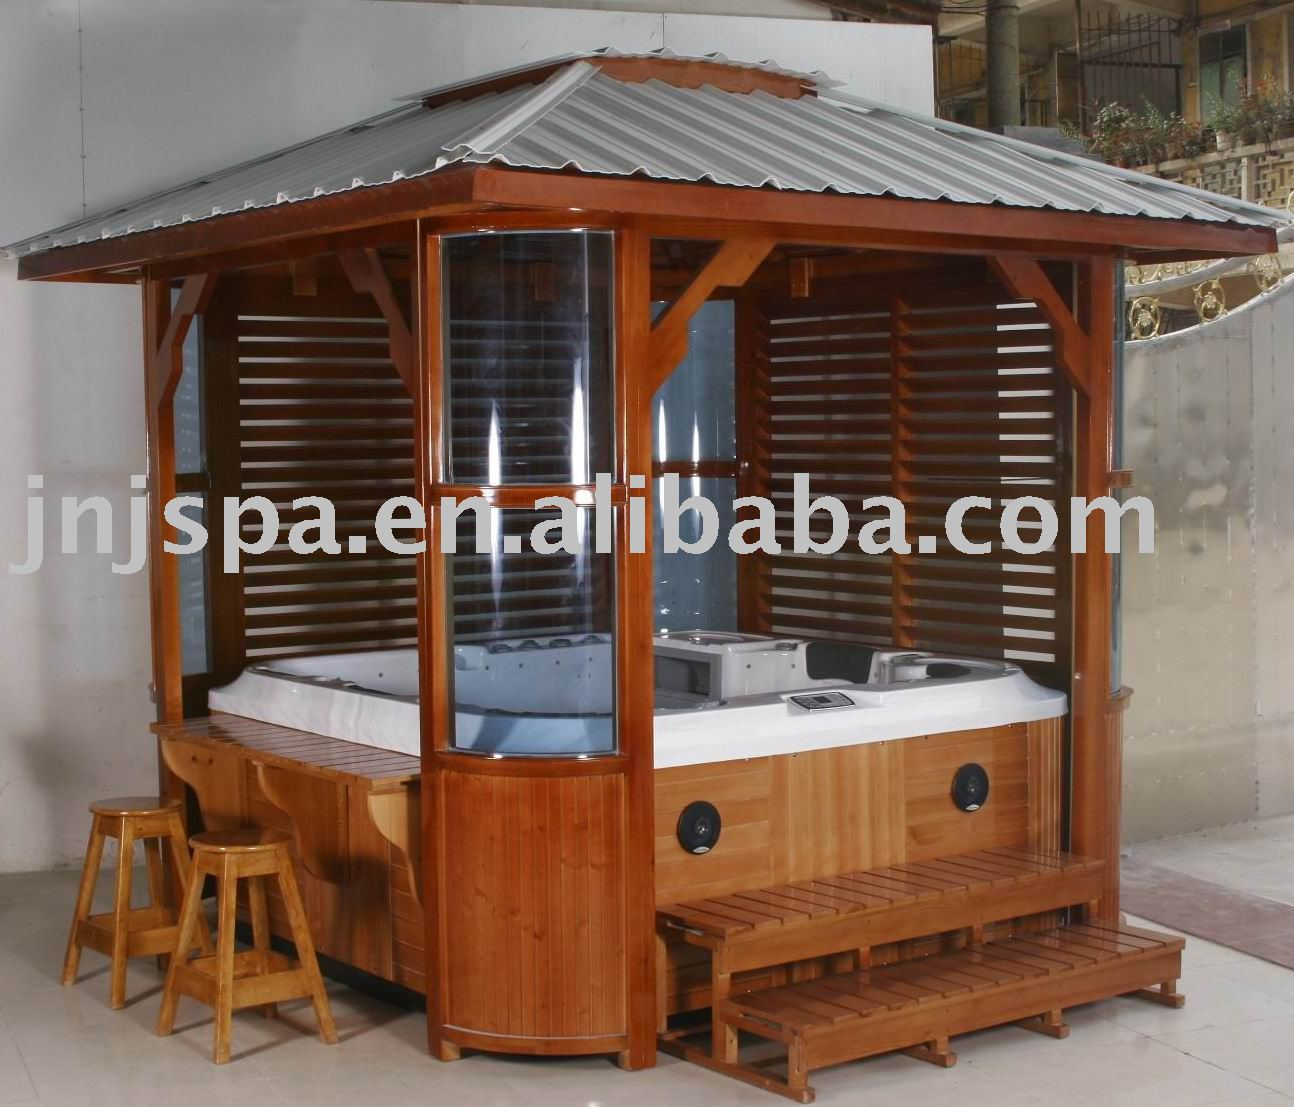 Whirlpool Spa Gazebo - Buy Whirlpool Spa Gazebo,Garden Gazebo ...